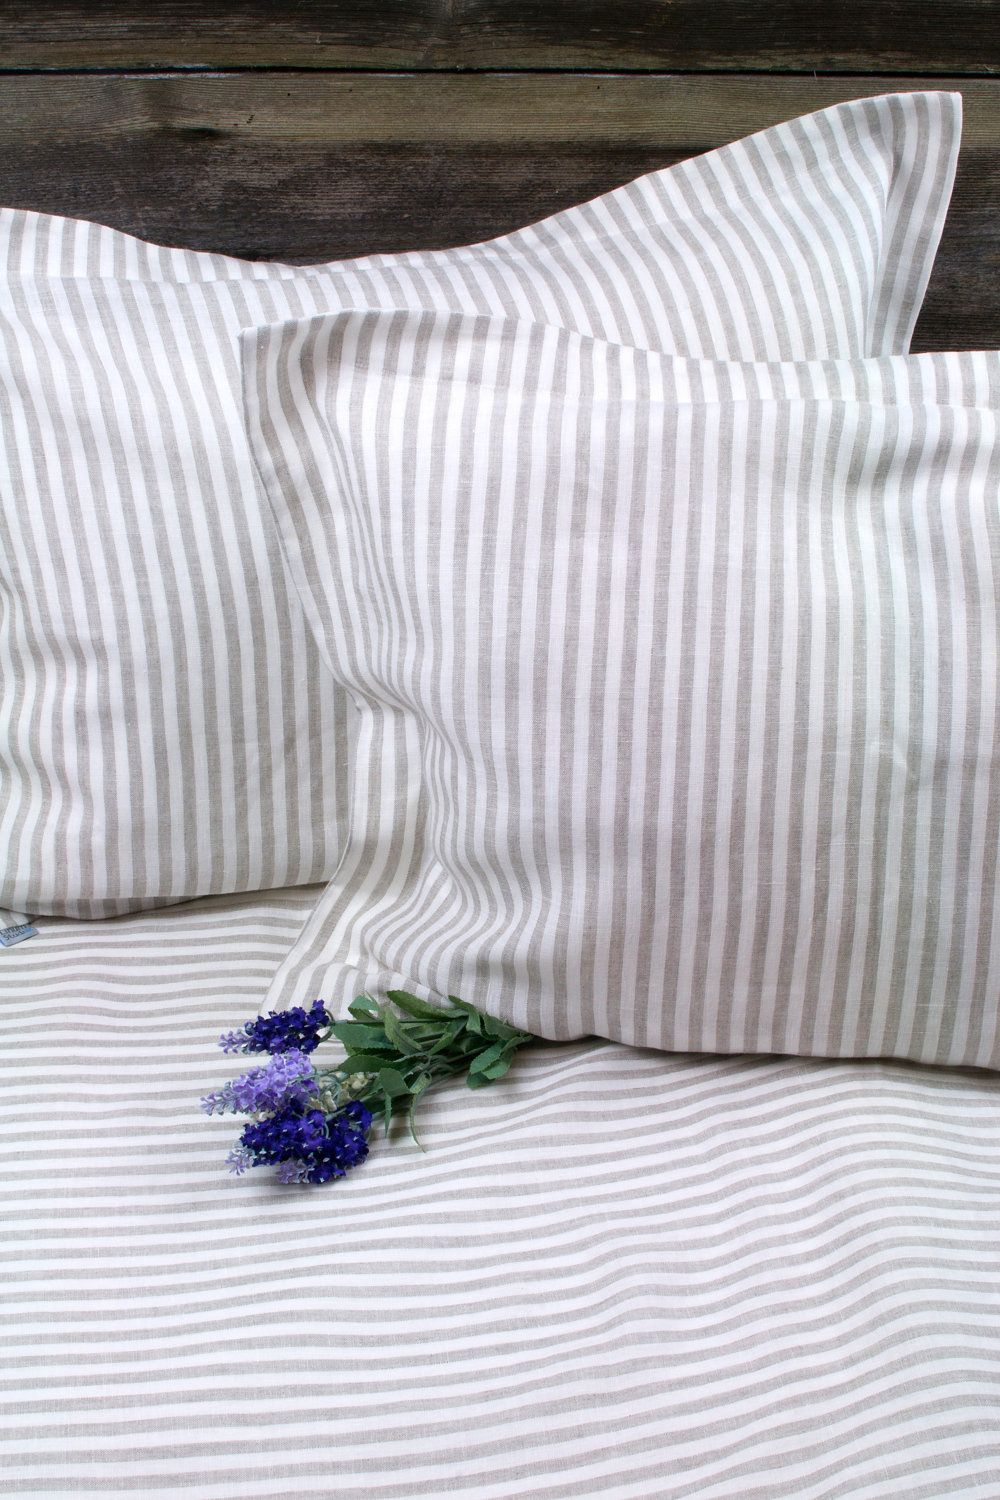 Pure Linen Striped Duvet Cover QUEEN SIZE. via etsy Bed